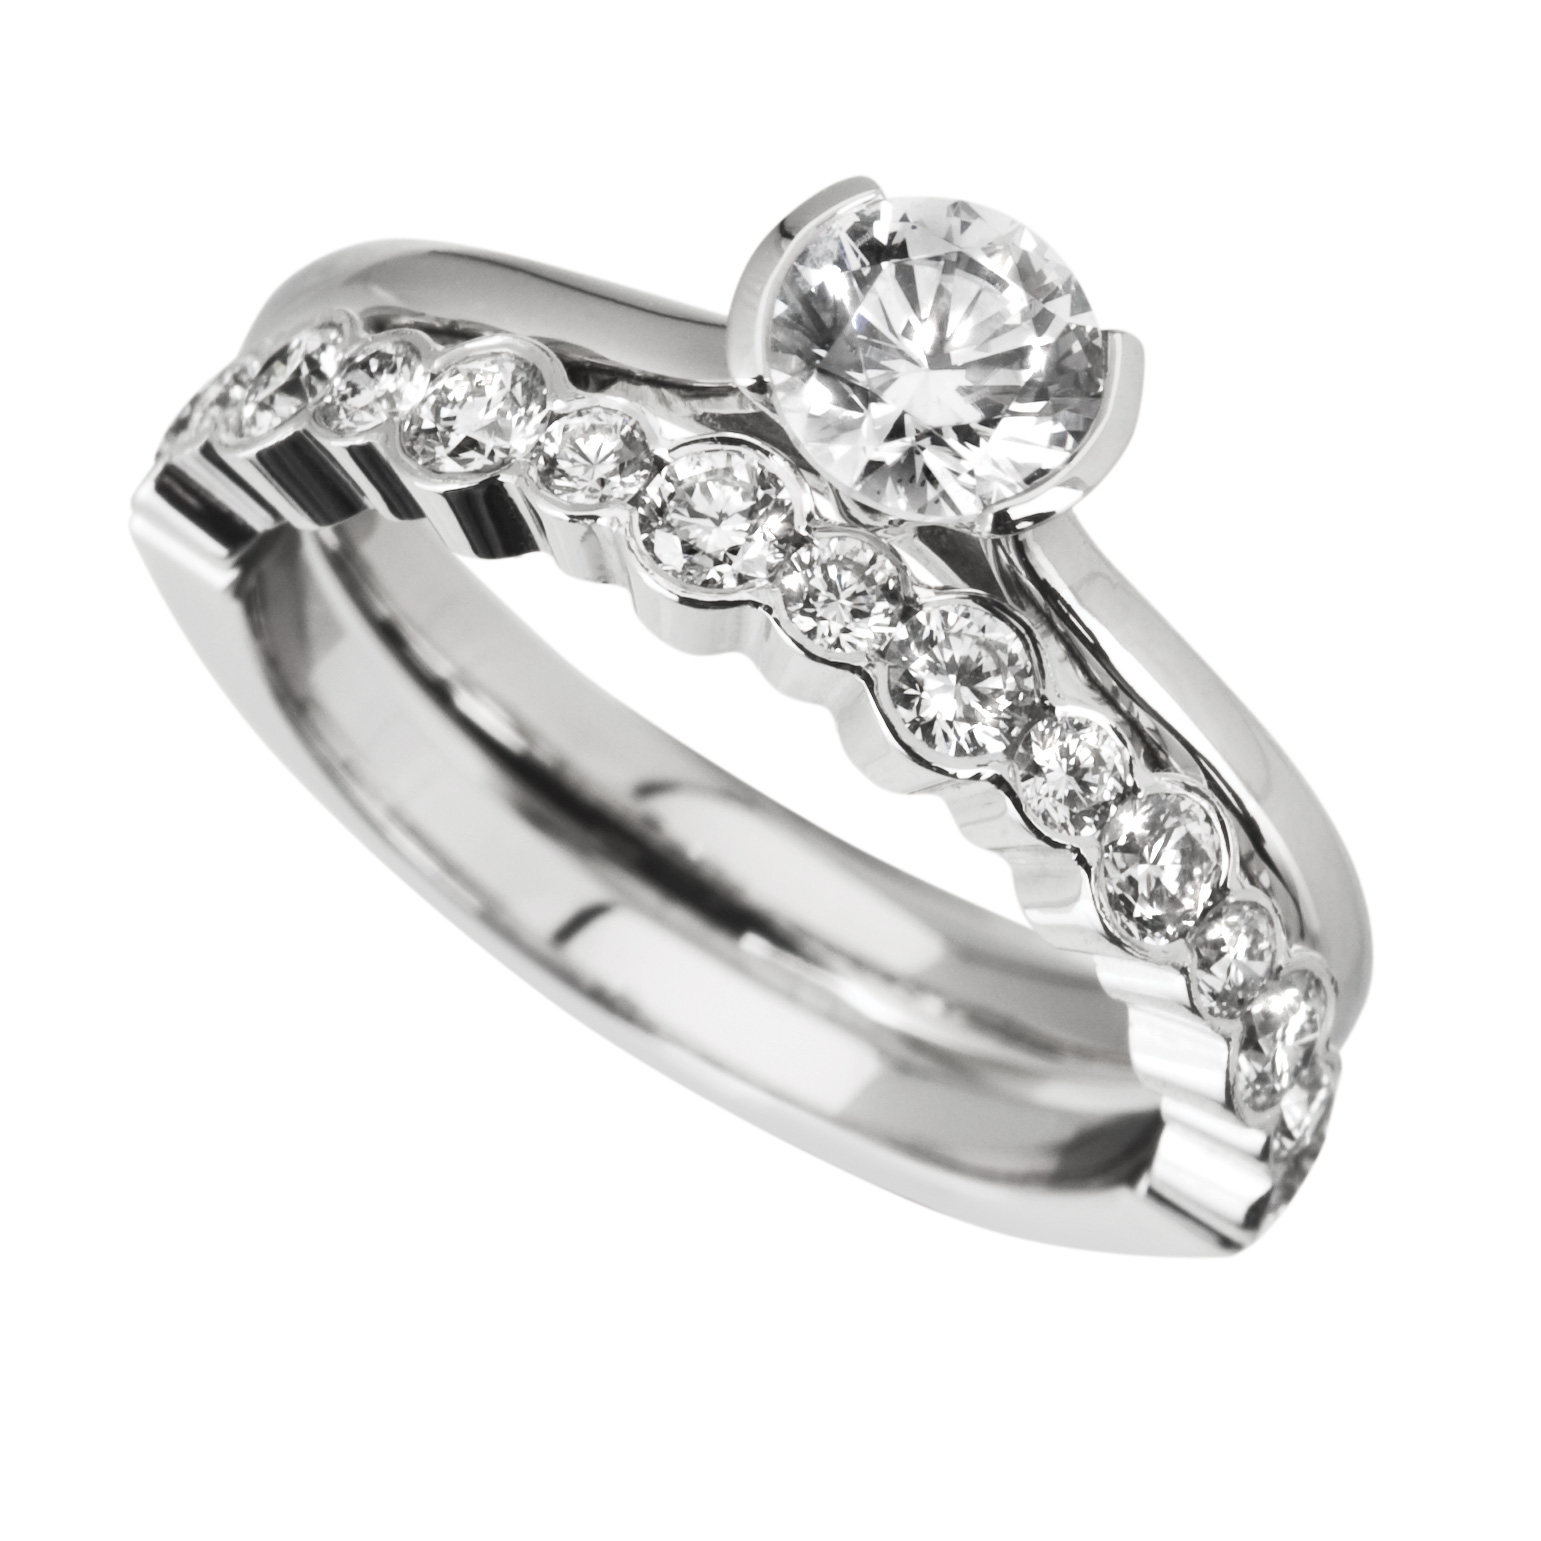 Make Your Wedding Special With Unique Wedding Engagement Rings    StyleSkier.com